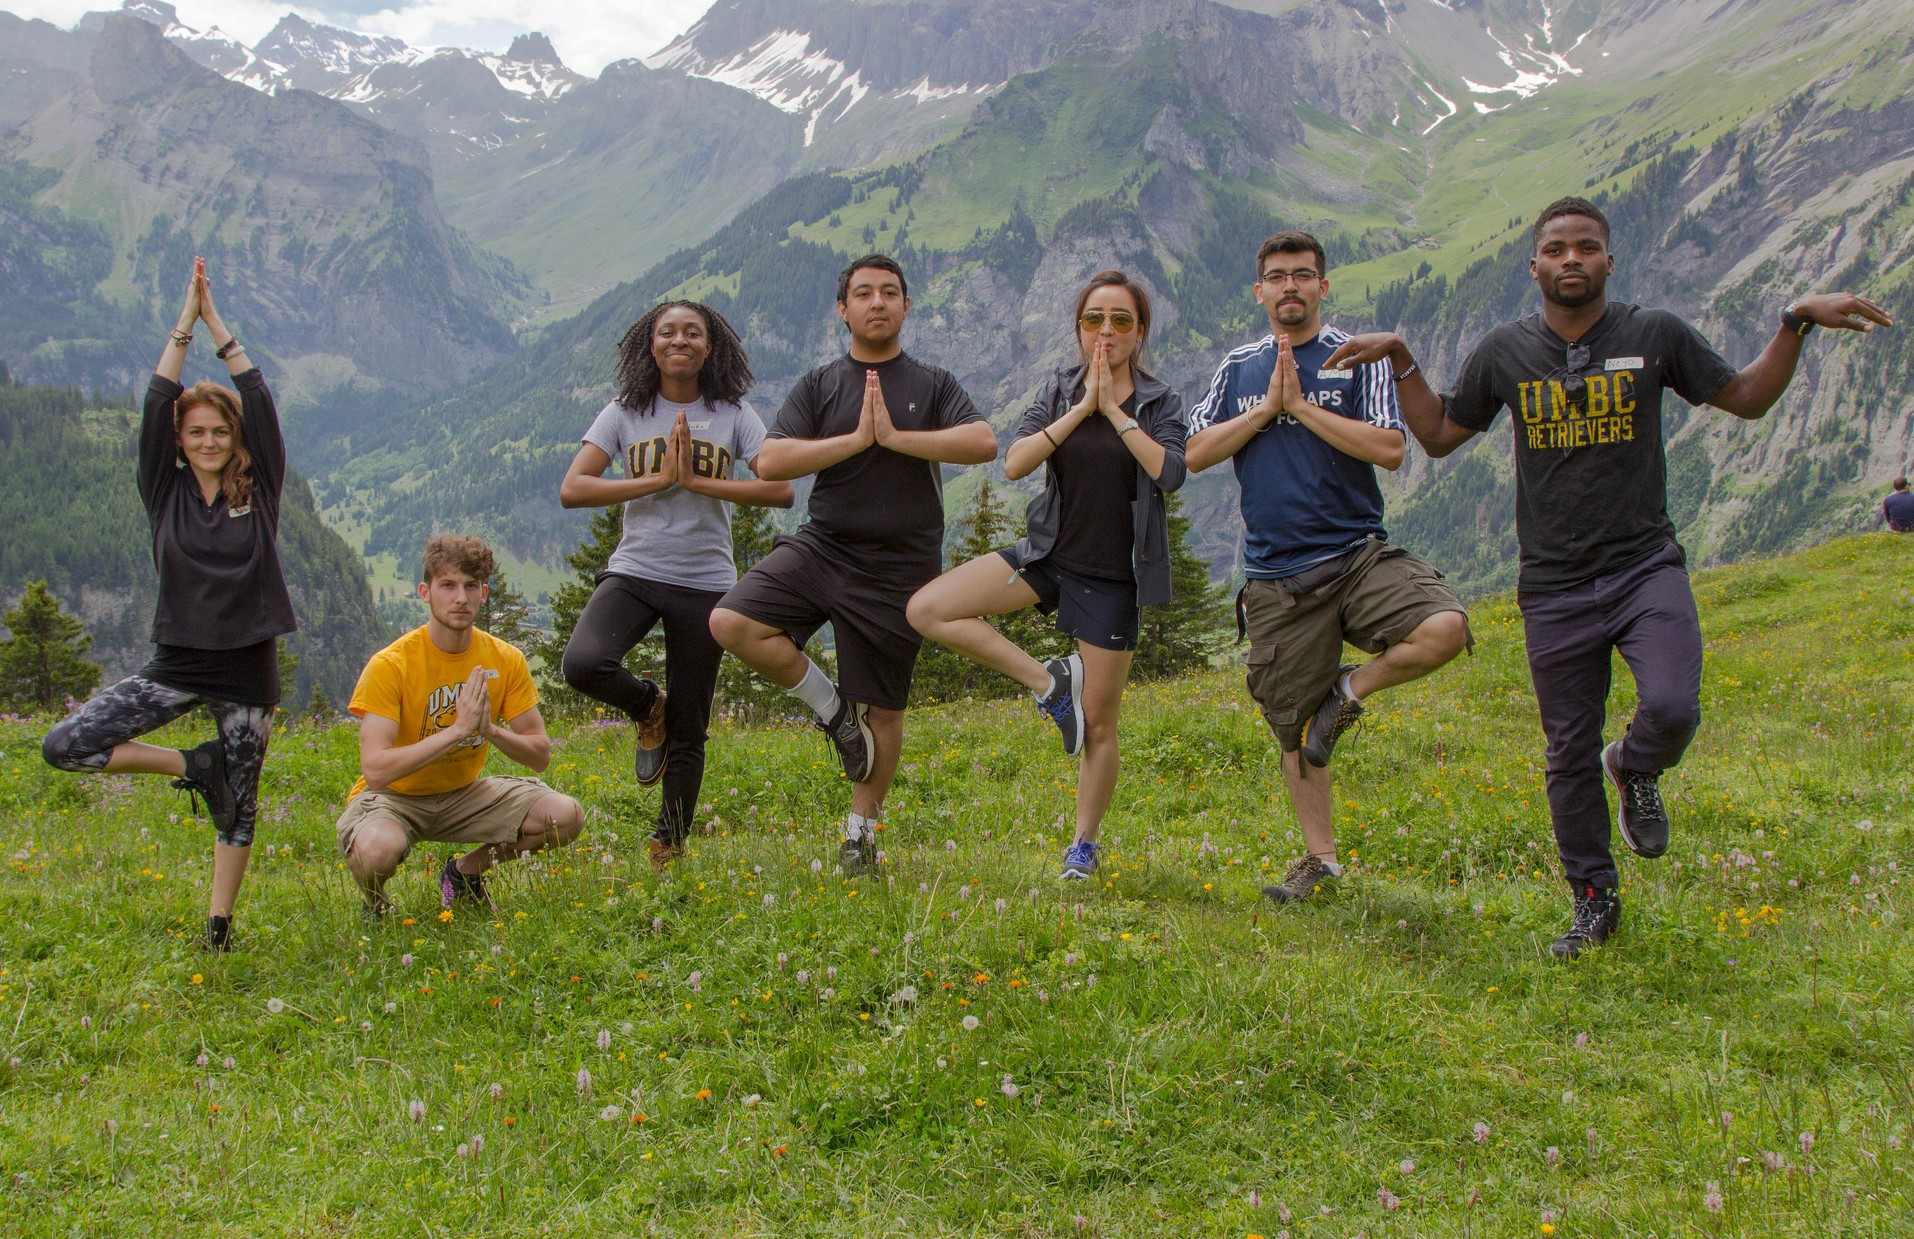 Alpine hiking, physical conditioning, and stress reduction